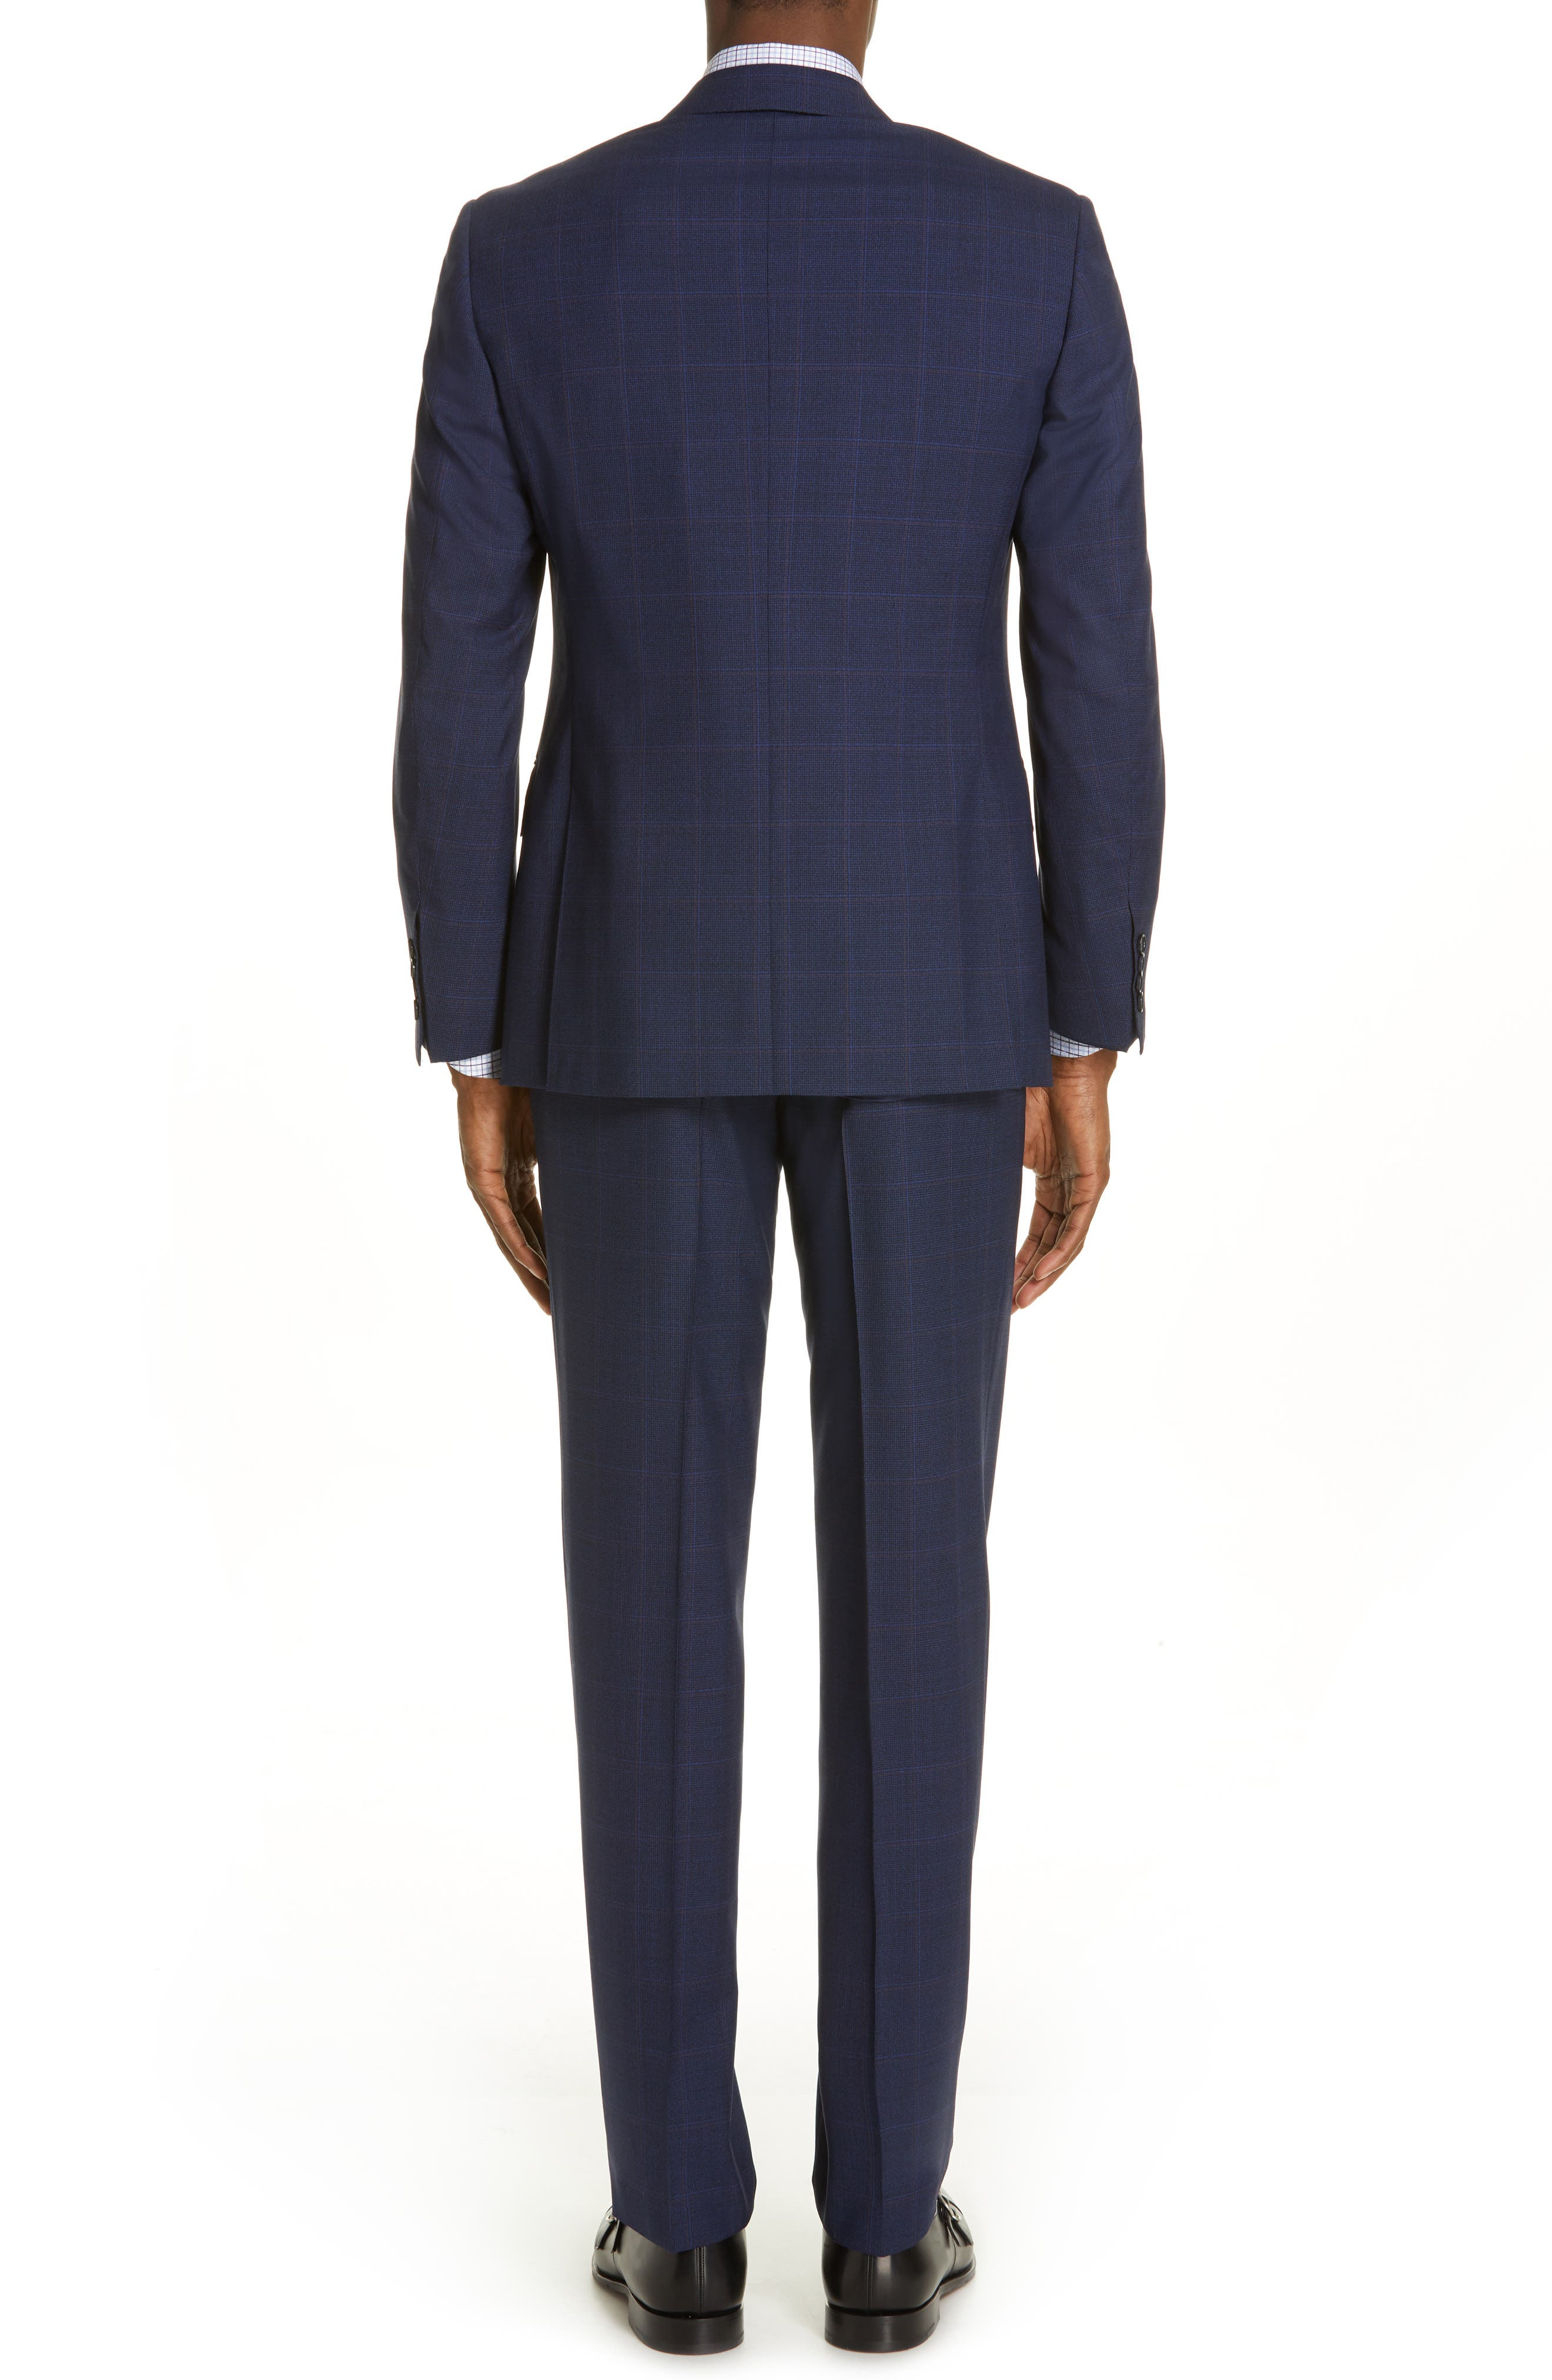 CANALI, Siena Soft Classic Fit Plaid Wool Suit, Alternate thumbnail 2, color, NAVY